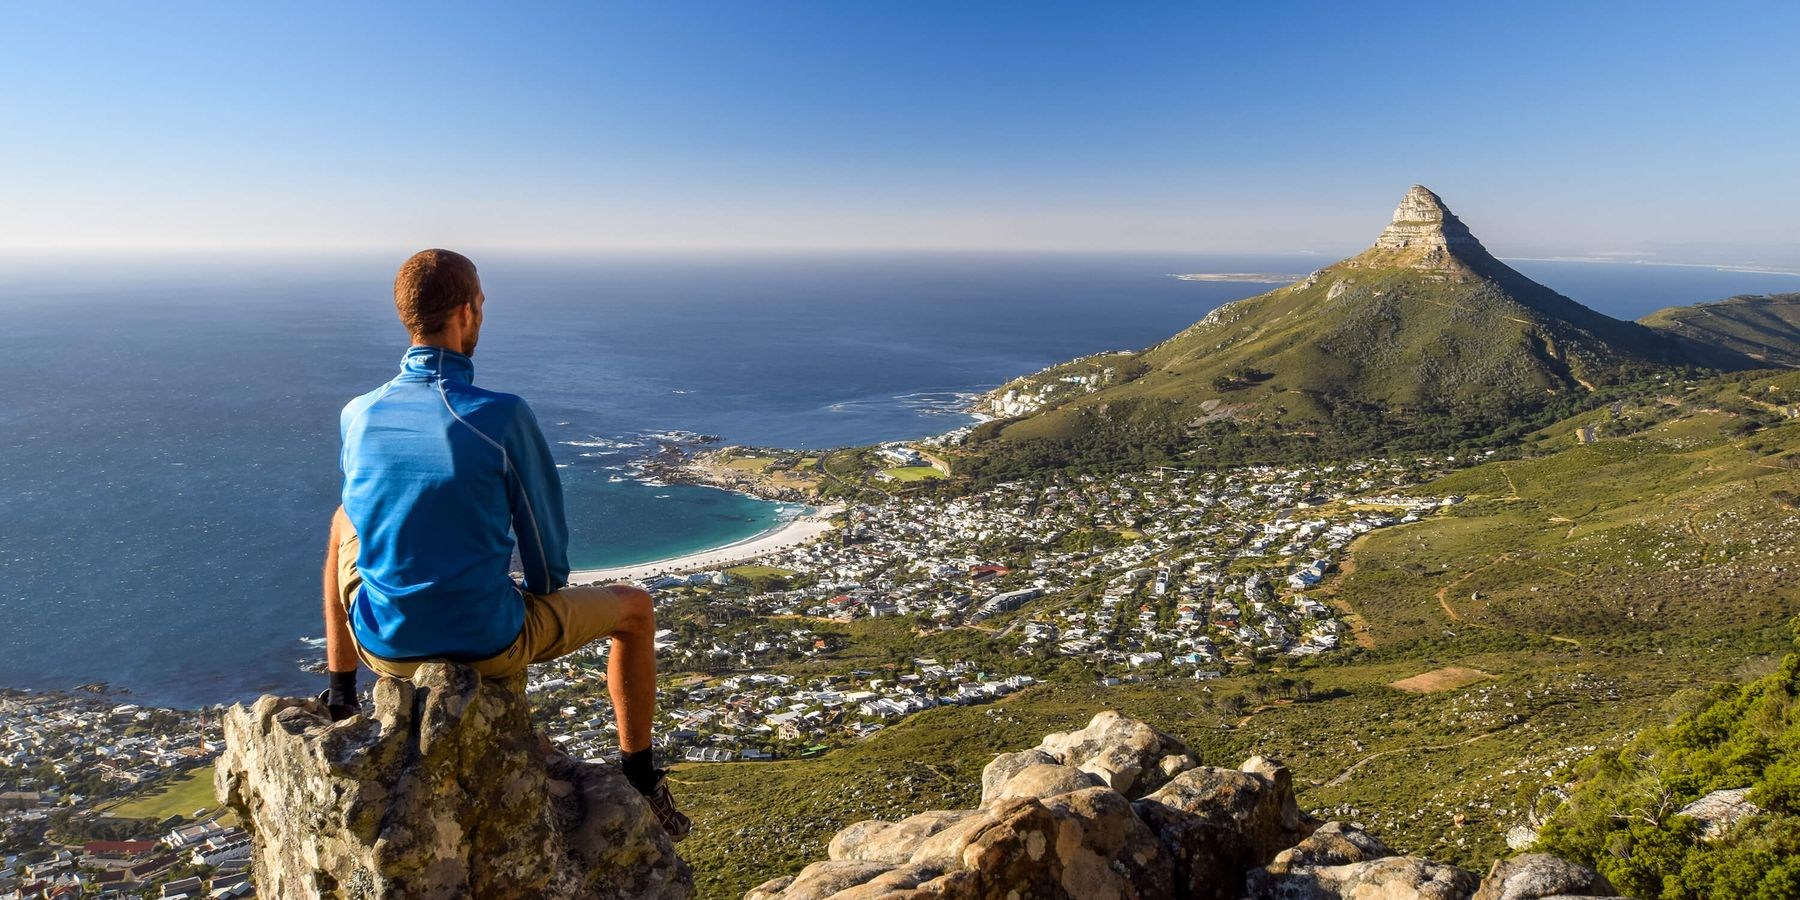 Person on a mountain looking at Cape Town